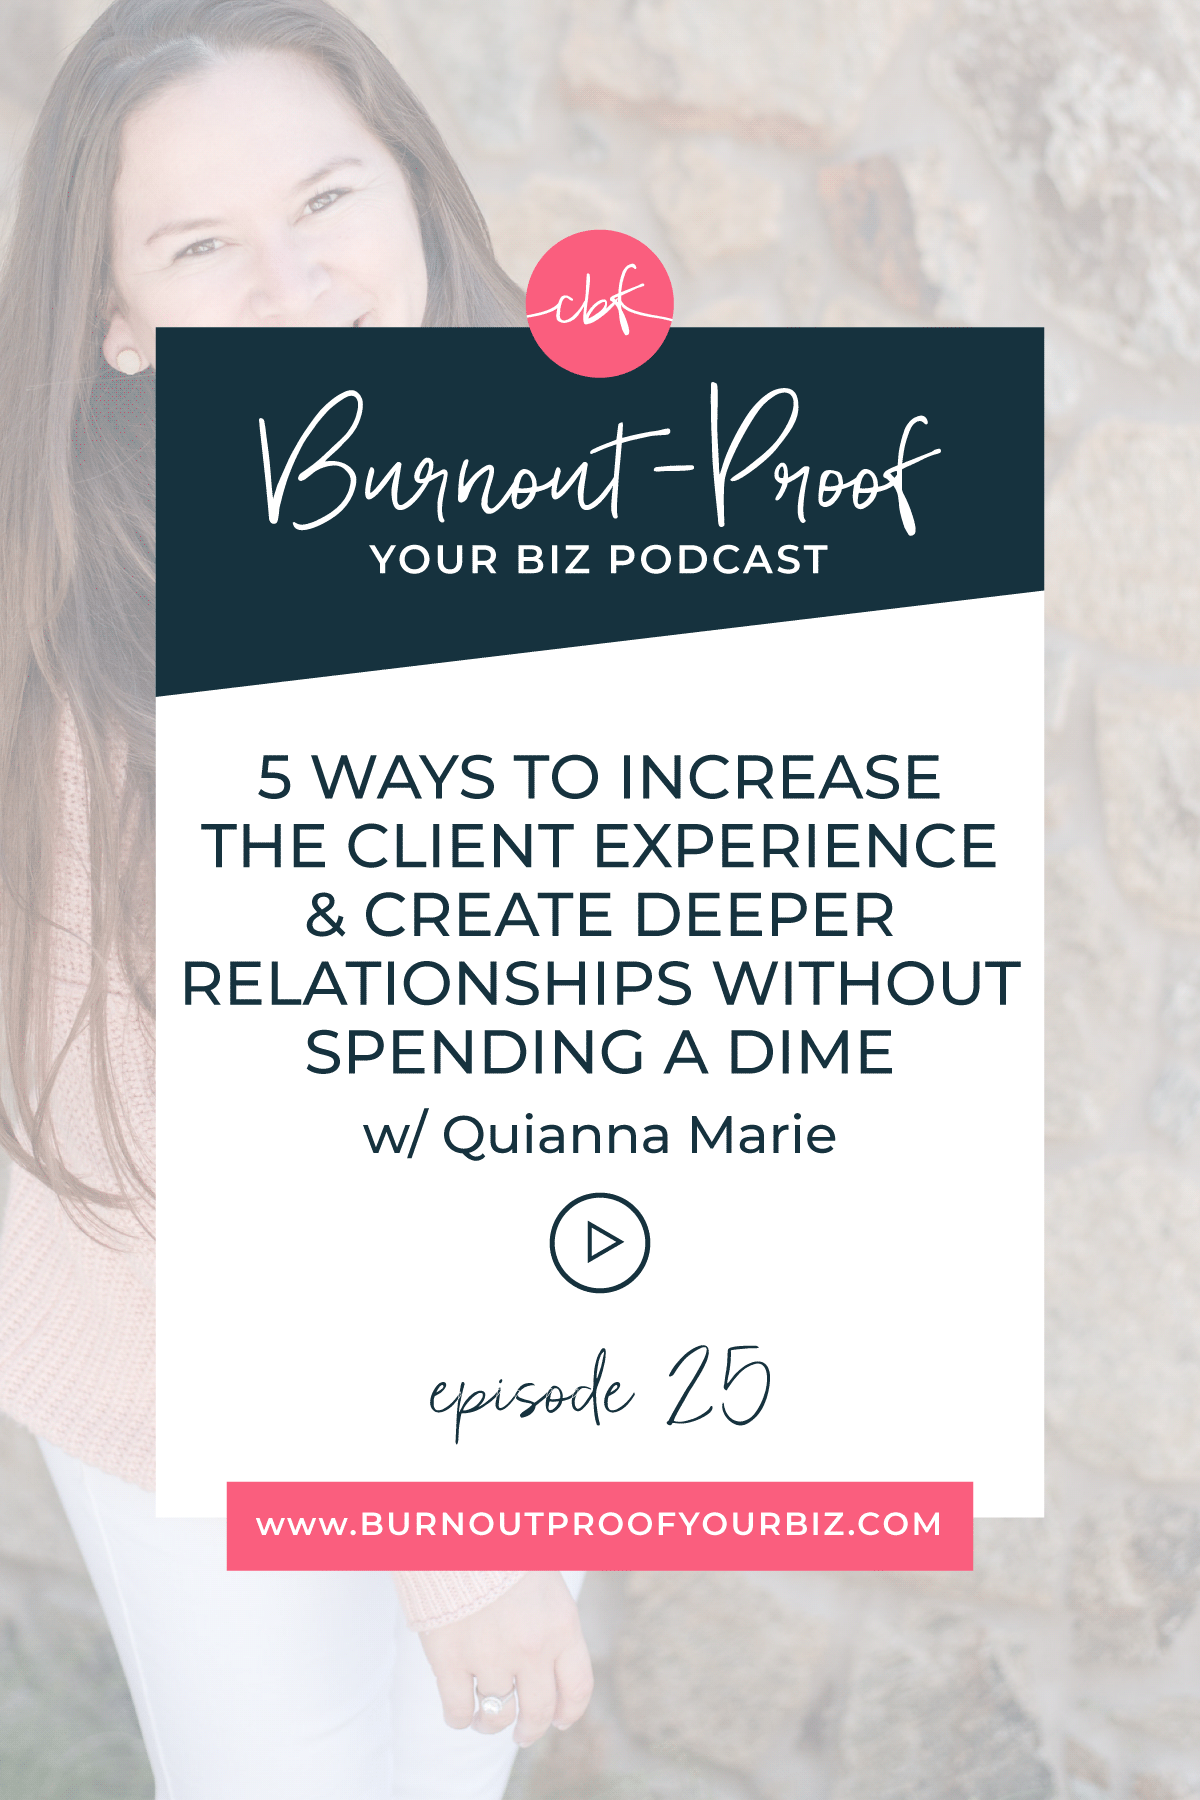 Burnout-Proof Your Biz Podcast with Chelsea B Foster | Episode 025 - 5 Ways to Increase the Client Experience & Create Deeper Relationships Without Spending a Dime with Quianna Marie | Learn how to run your biz and live your dream life on your own terms without the fear of burnout.